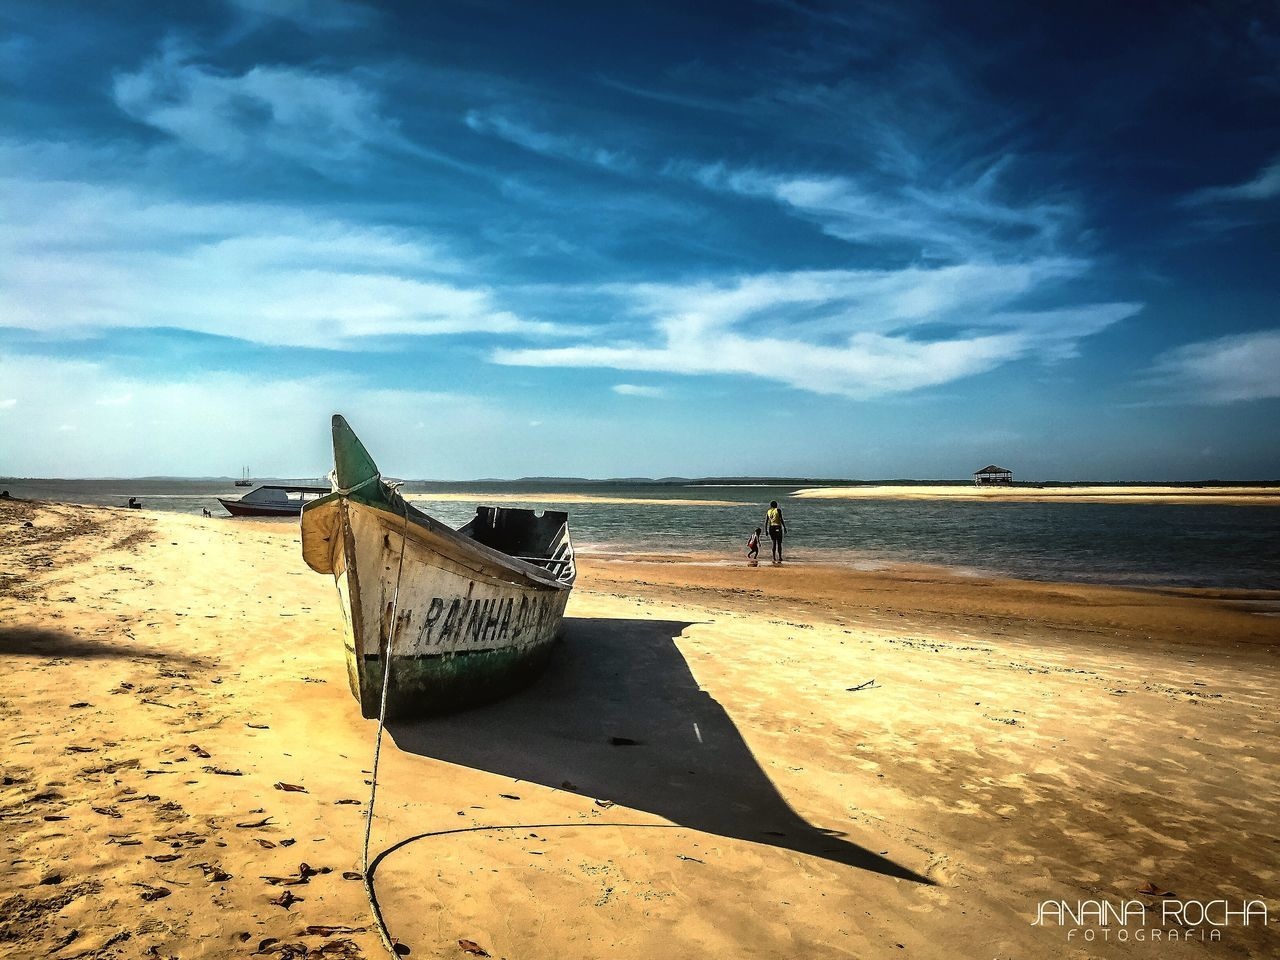 beach, sand, sea, nautical vessel, shore, horizon over water, water, nature, sky, boat, beauty in nature, transportation, scenics, mode of transport, tranquility, outdoors, day, cloud - sky, tranquil scene, full length, moored, standing, one person, longtail boat, real people, outrigger, people